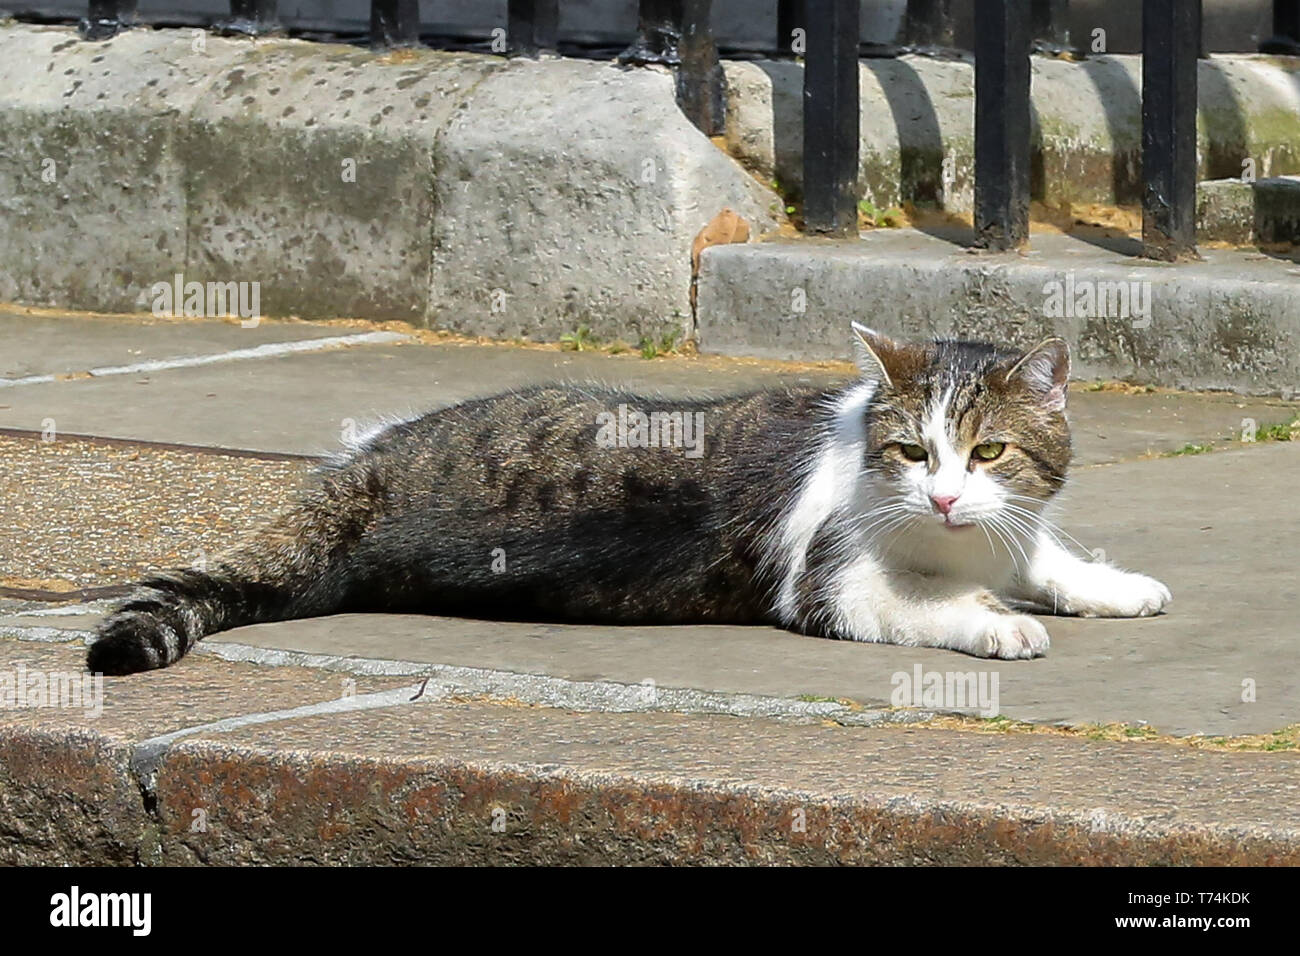 London, UK. 1st May, 2019. Larry, the 10 Downing Street cat and Chief Mouser to the Cabinet Office is seen in Downing Street just before the British Prime Minister, Theresa May departs for the House of Commons for the Prime Minister's Question Time. Credit: Dinendra Haria/SOPA Images/ZUMA Wire/Alamy Live News - Stock Image